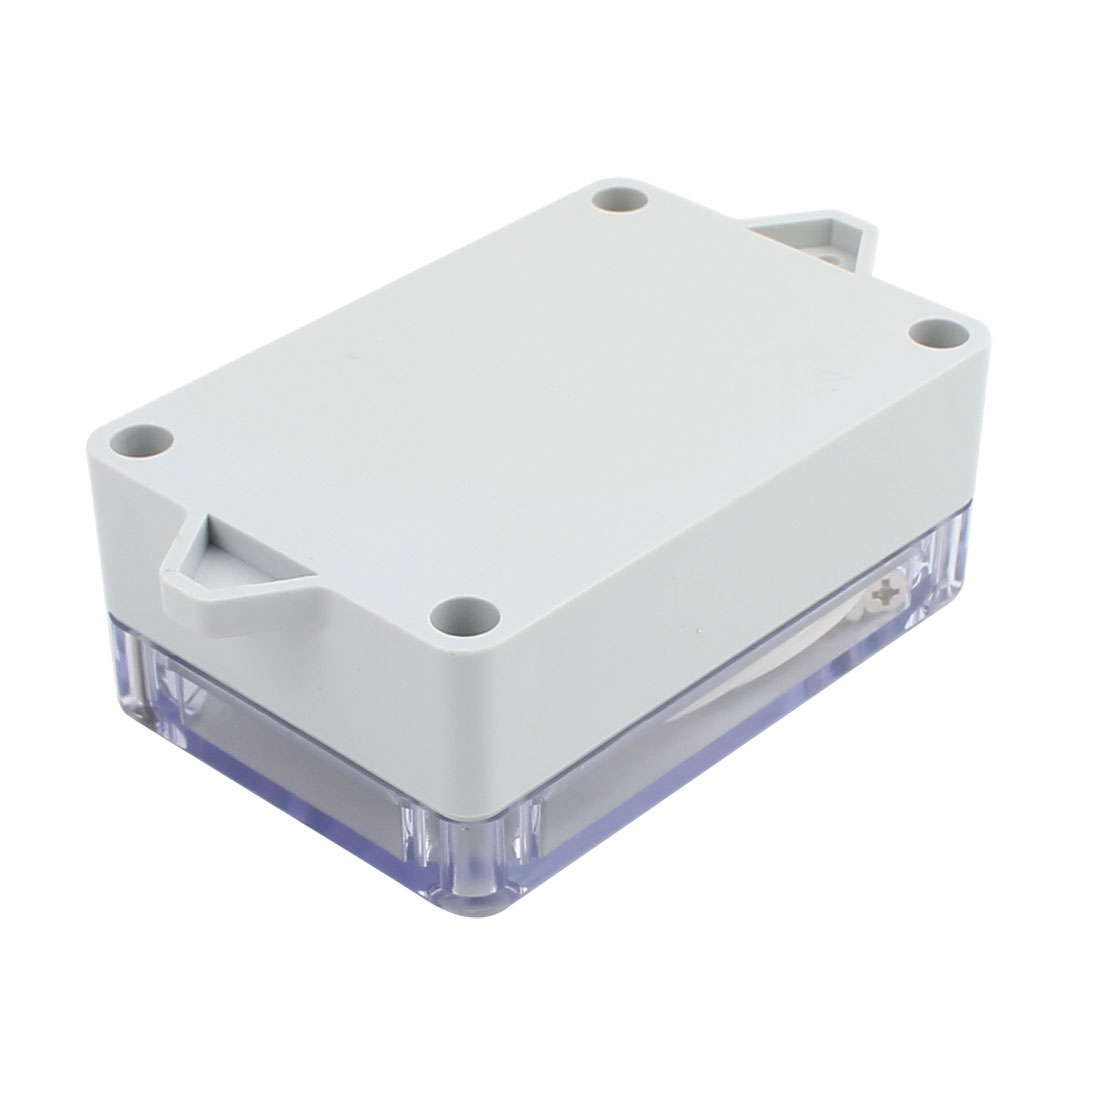 100x68x40mm Screw Mount Waterproof ABS Junction Box Enclosure w PC Clear Cover - image 1 of 3